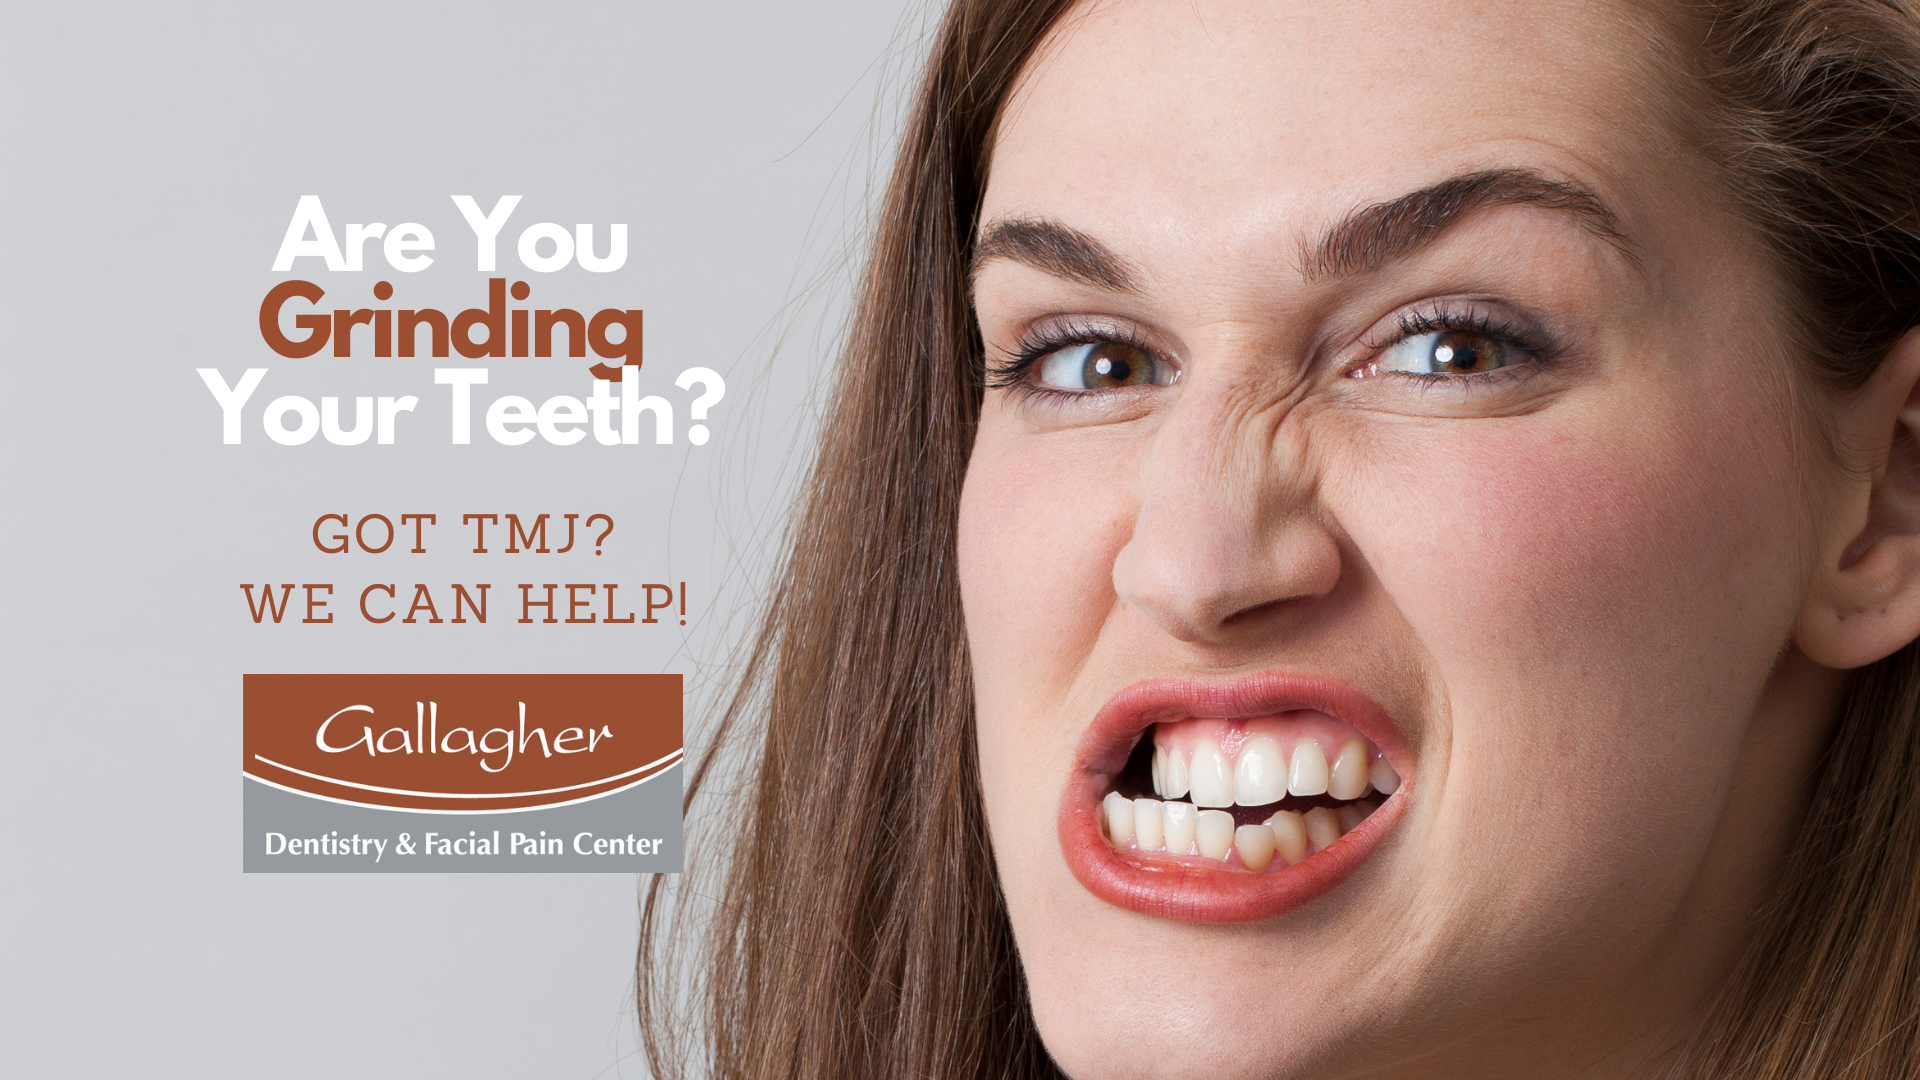 Are You Grinding Your Teeth? Got TMJ?